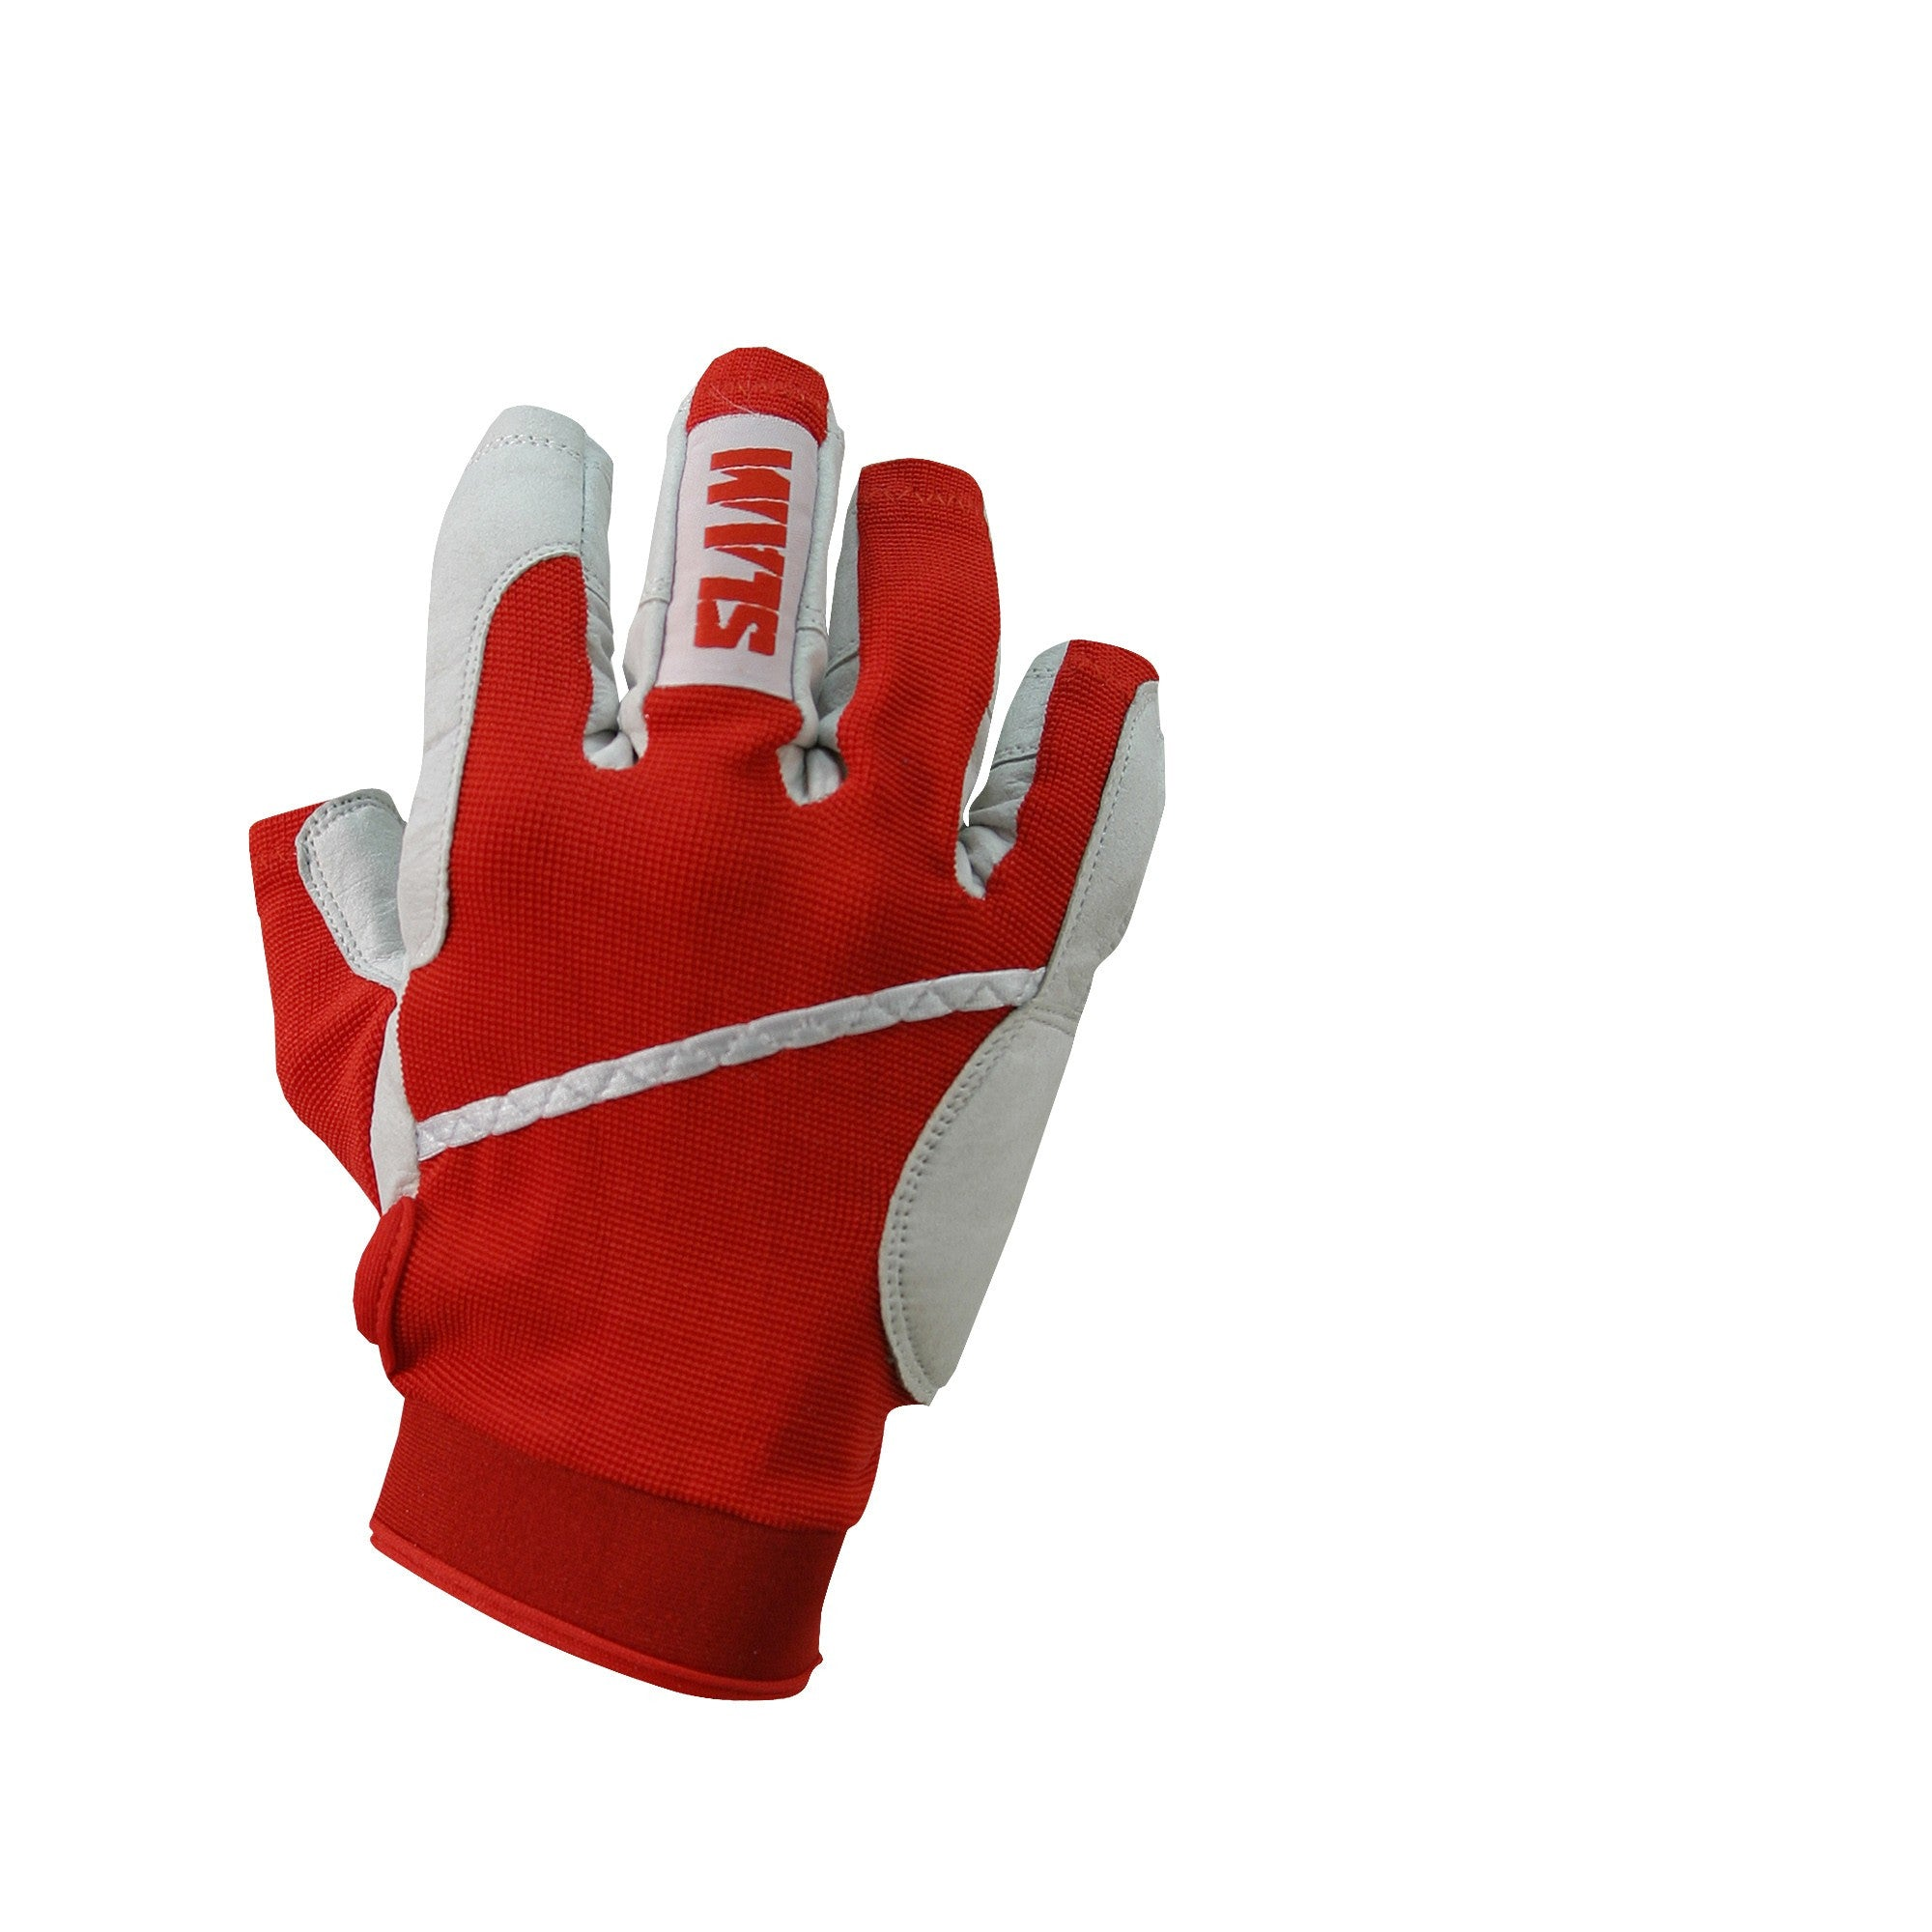 Sailing Glove - Short Finger